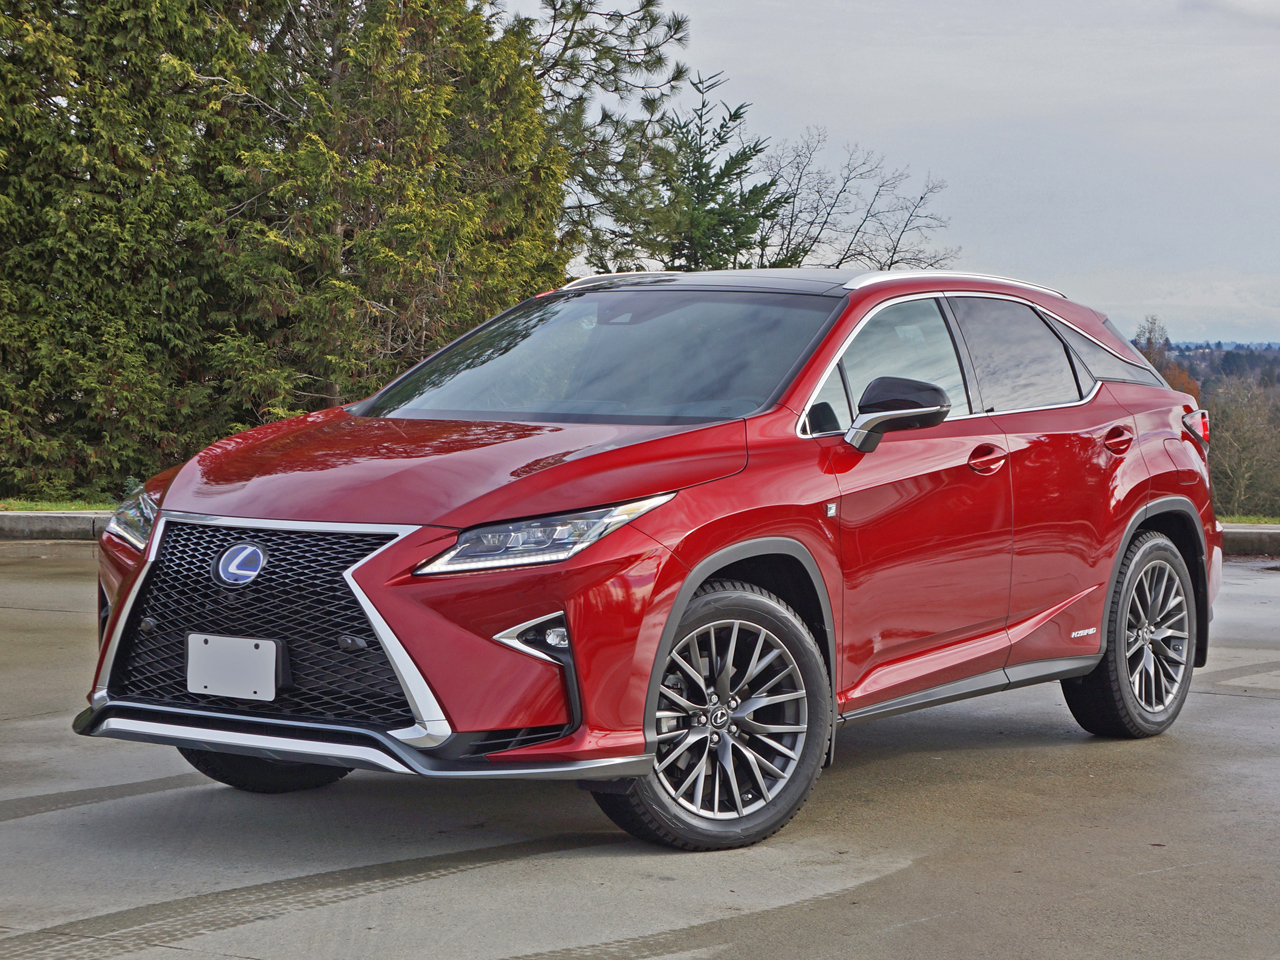 2016 lexus rx 450h f sport awd road test review carcostcanada. Black Bedroom Furniture Sets. Home Design Ideas